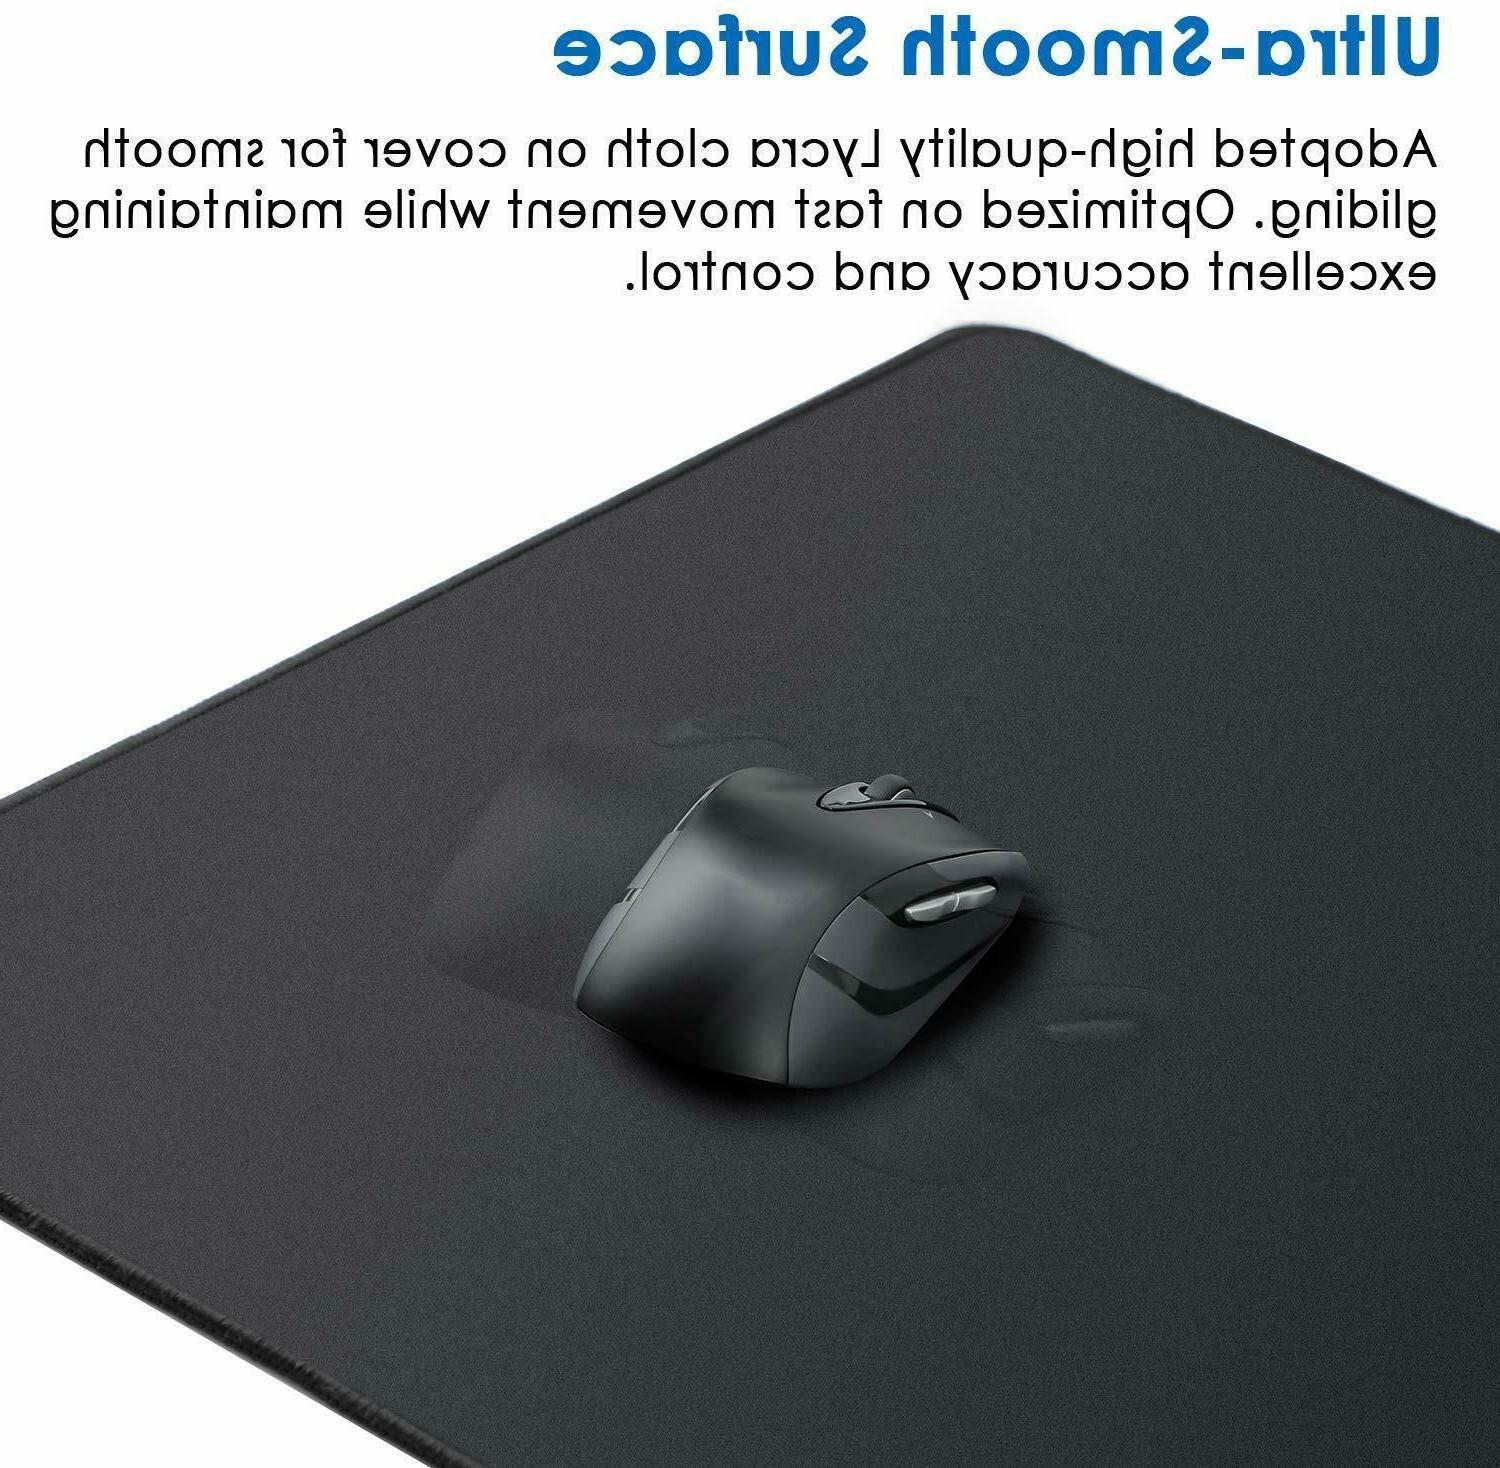 Large Mouse Pad Stitched Waterproof 31.5x11.8